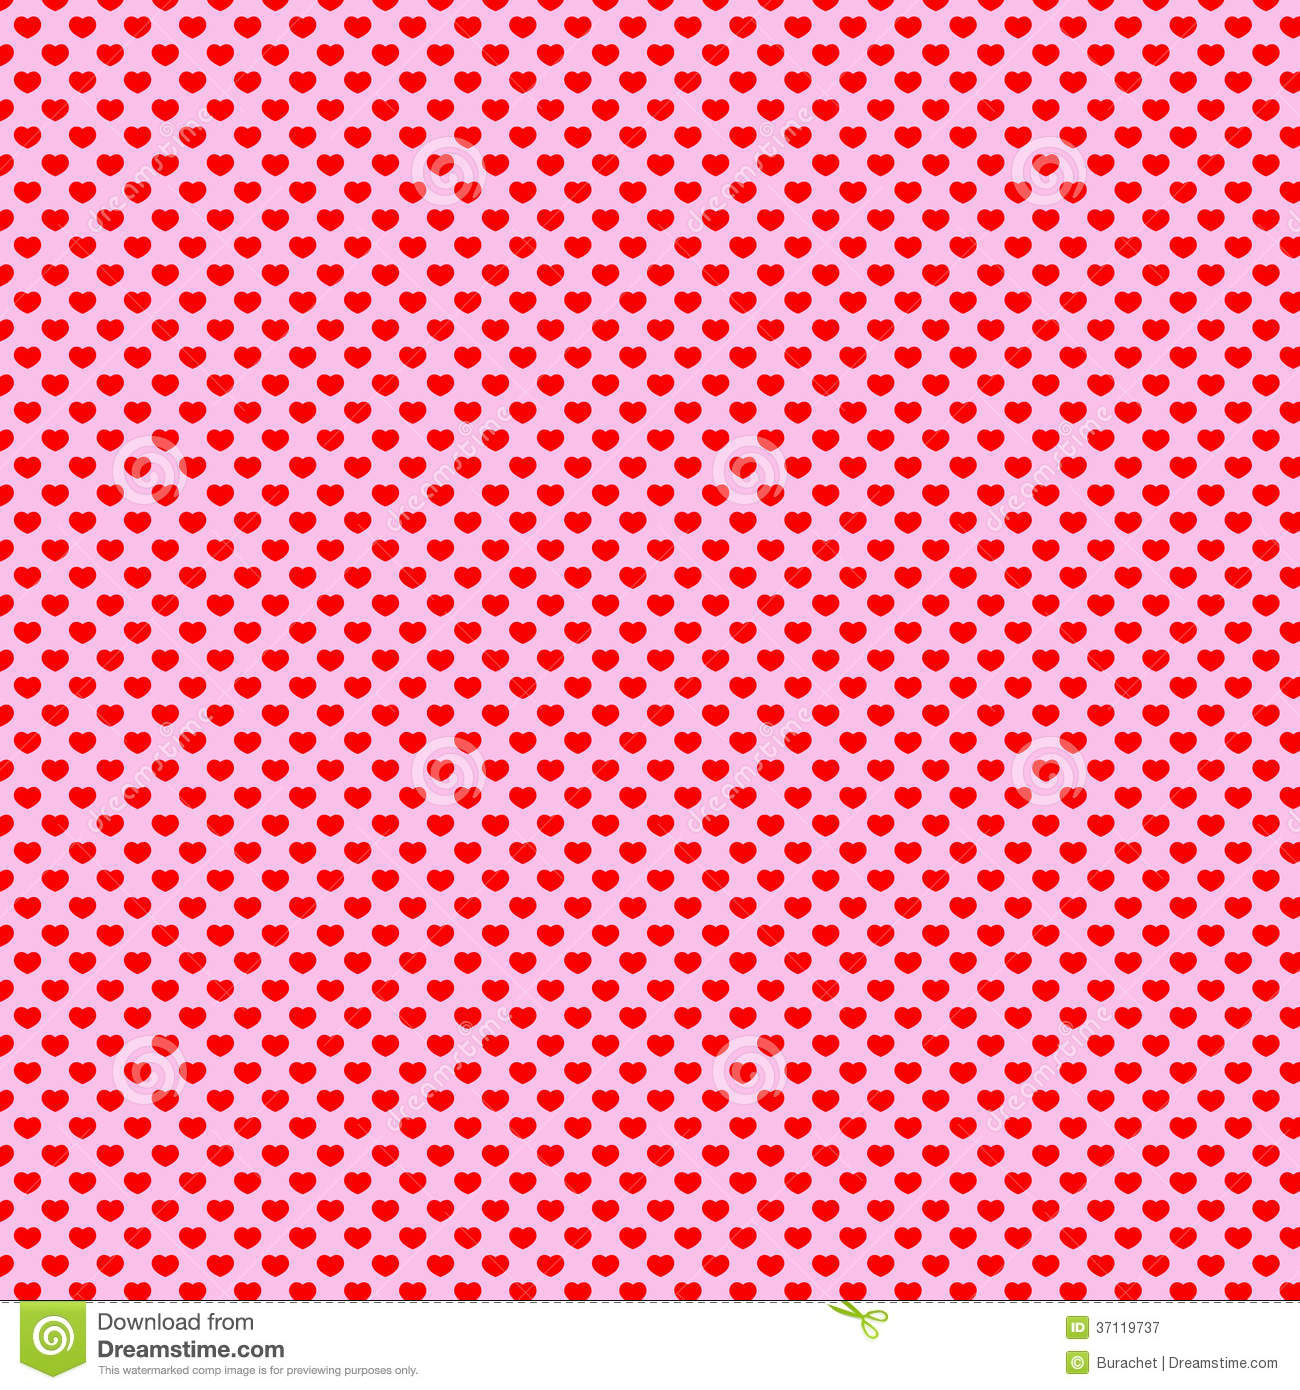 Heart polka dot pattern royalty free stock photography for Red and white polka dot pattern